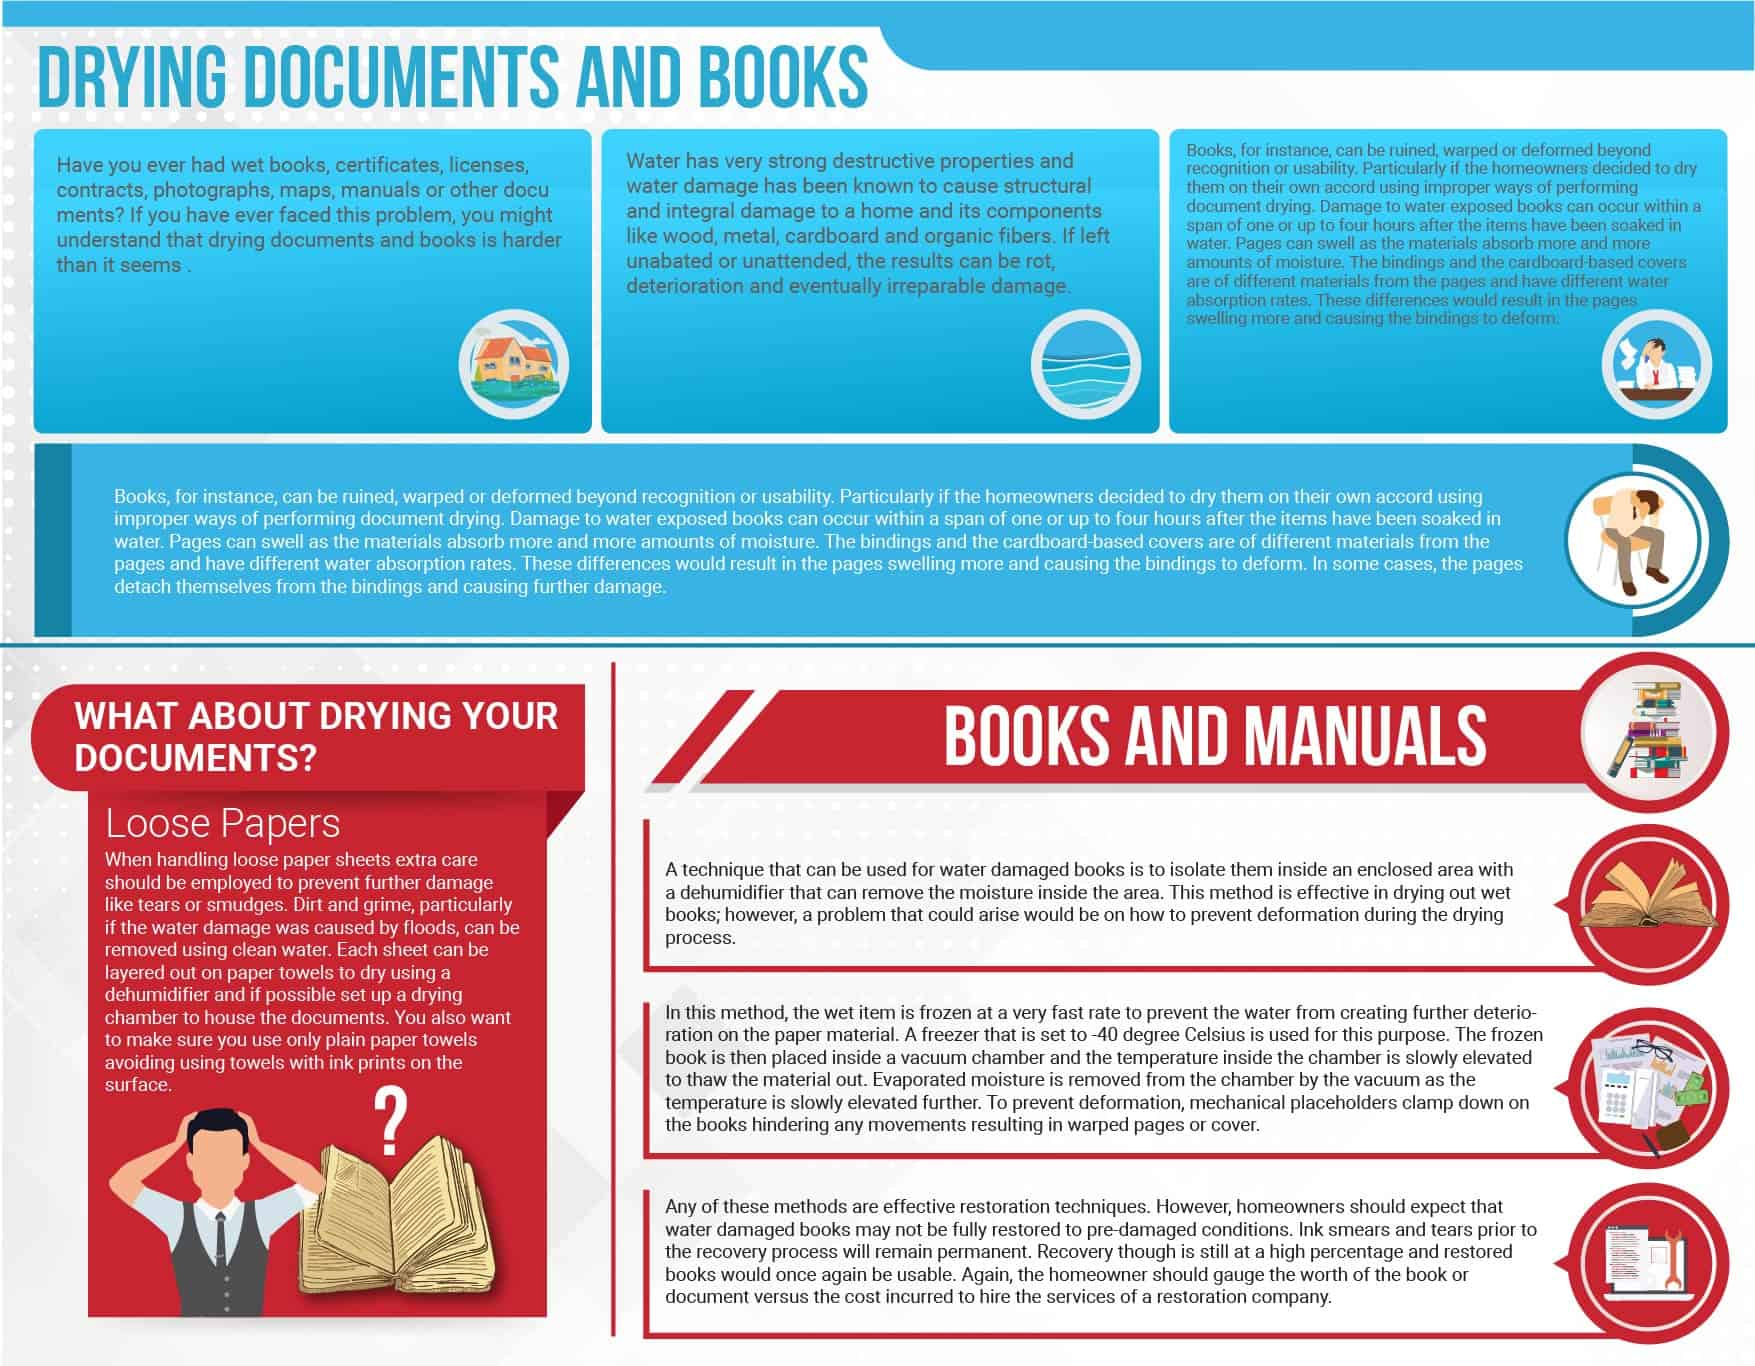 drying documents and books infographic